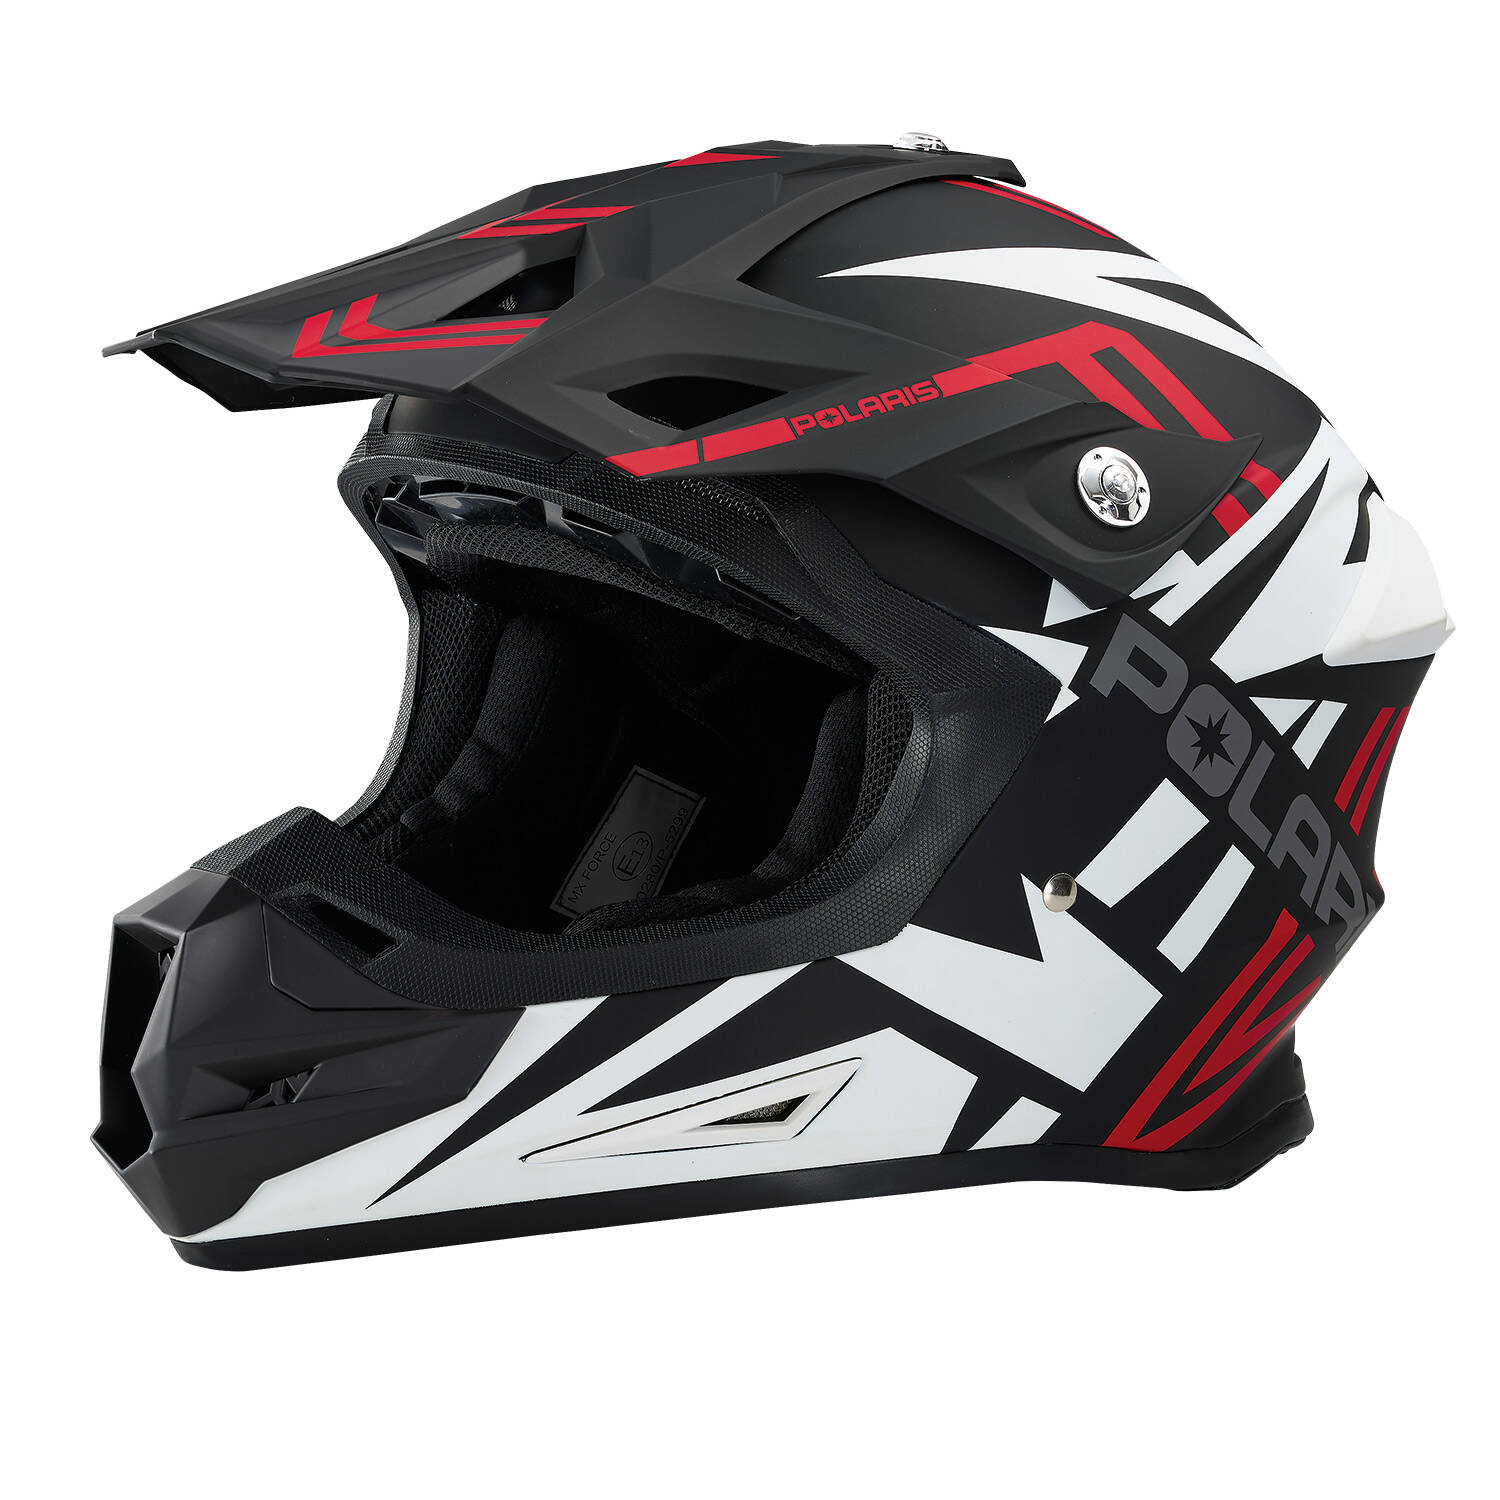 Force Adult Moto Helmet with Removable Mouthpiece, Red